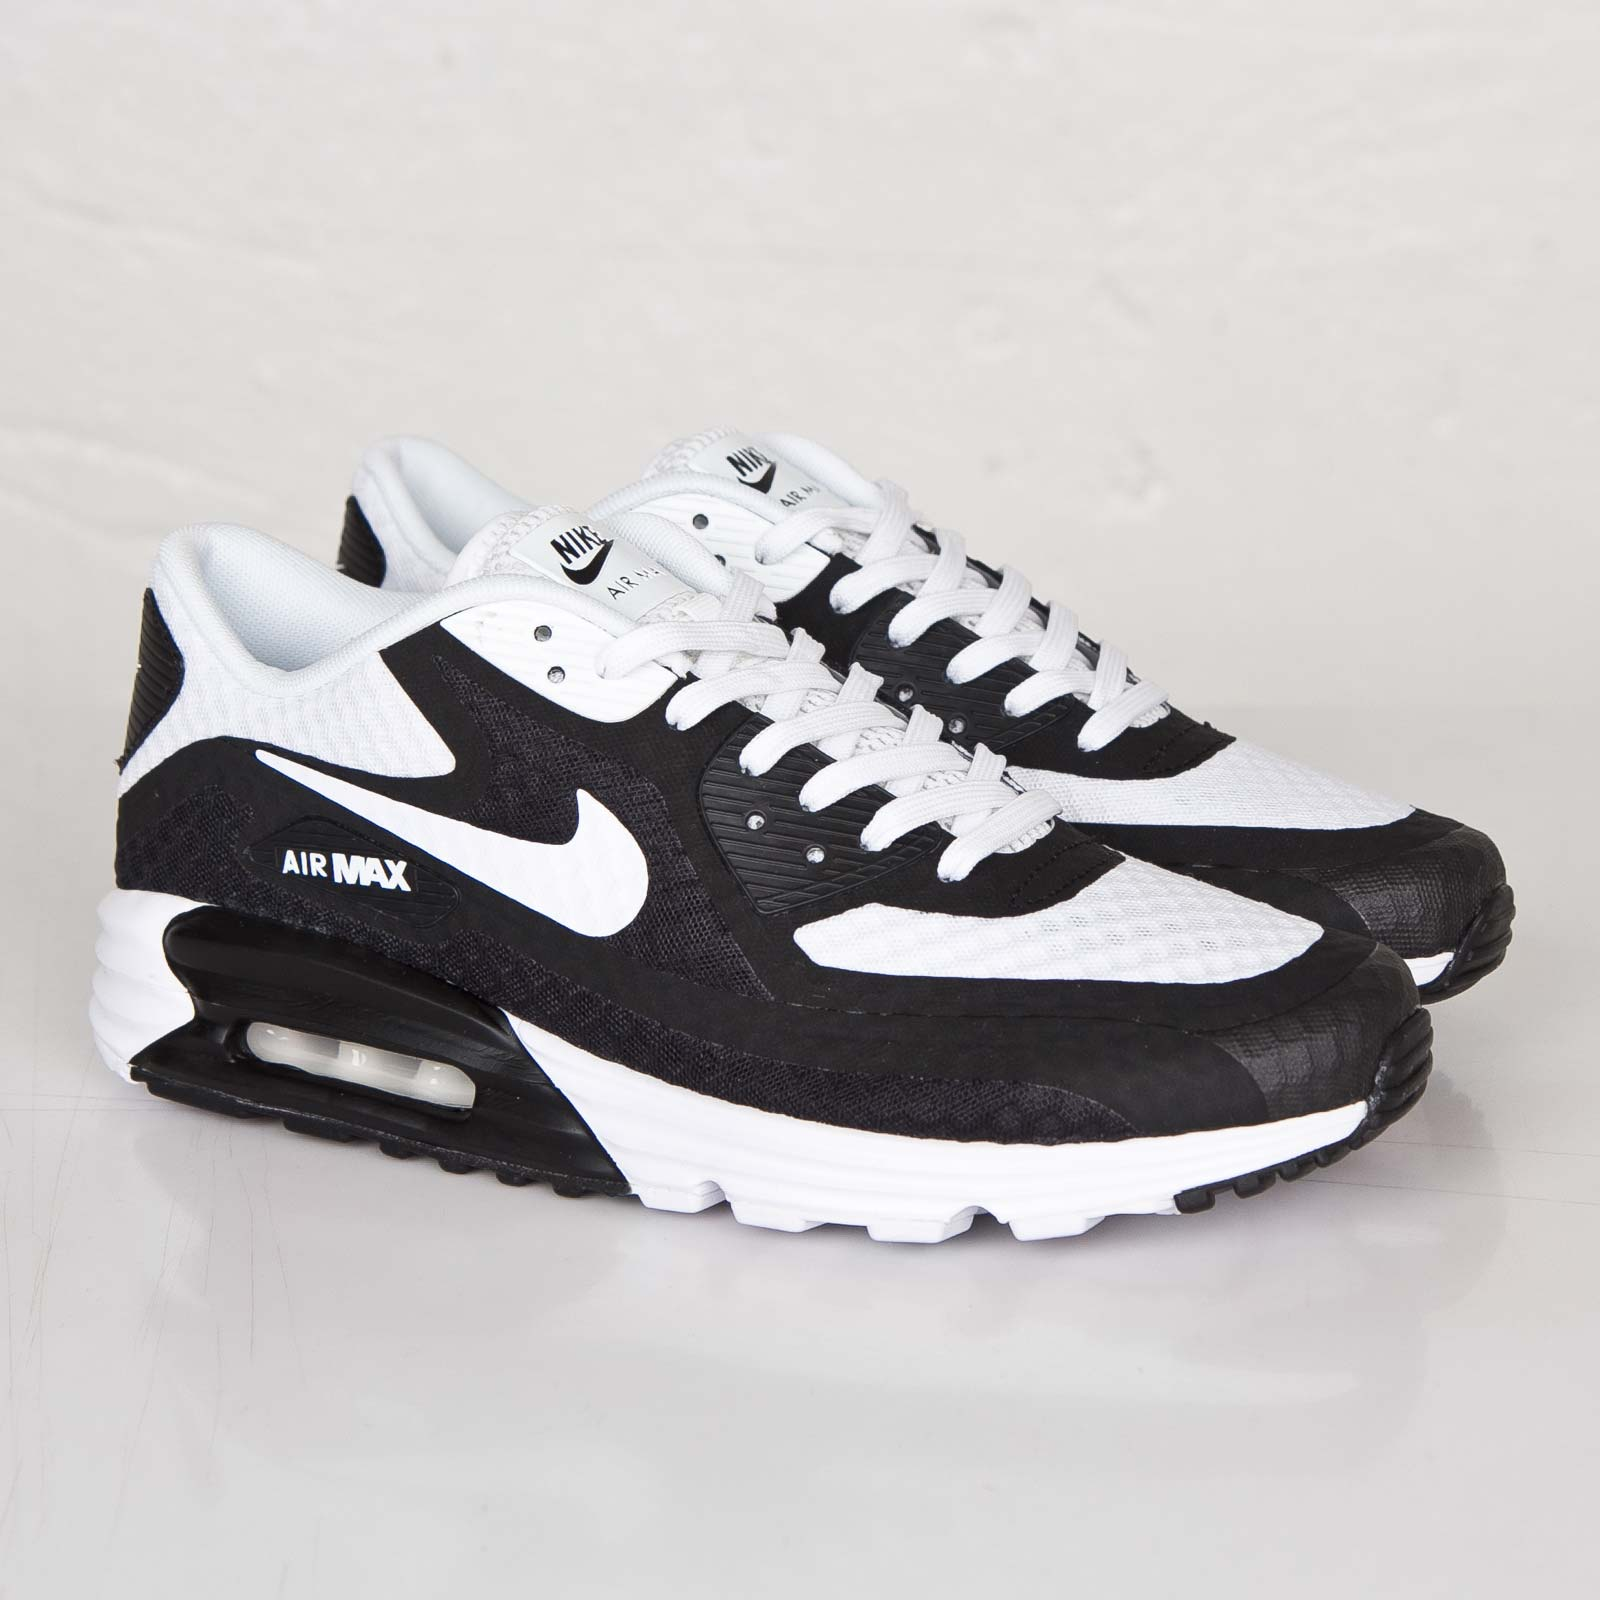 outlet store ab673 abea7 Nike Air Max Lunar90 Breeze